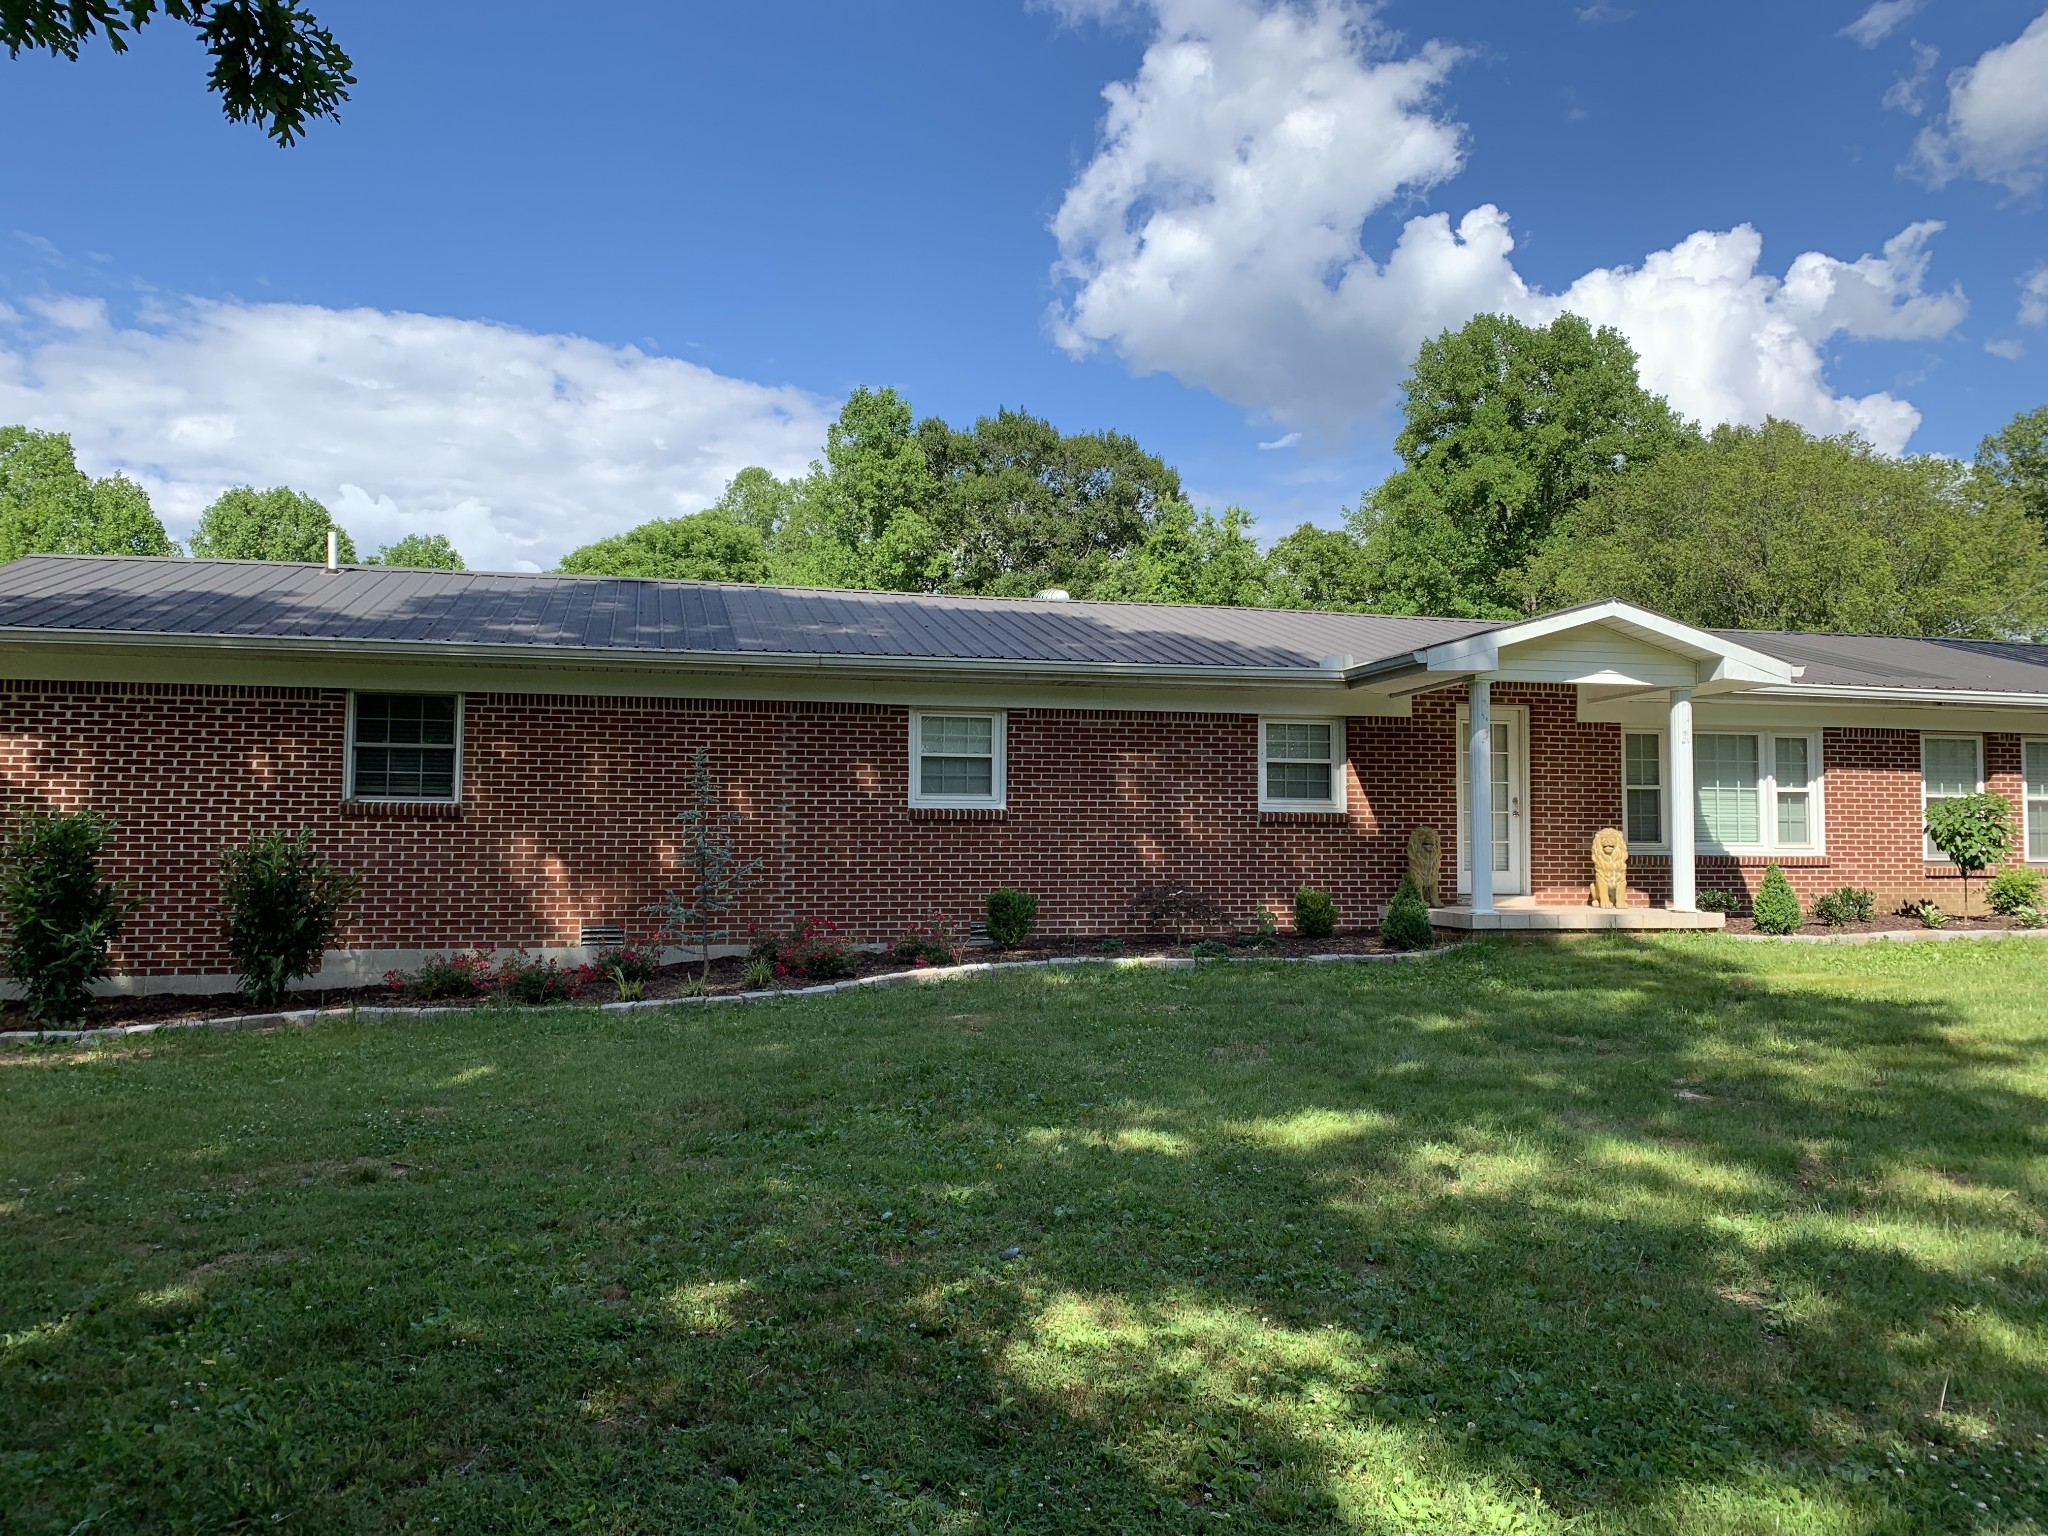 117 Hubert Brown Cir Property Photo - Gainesboro, TN real estate listing